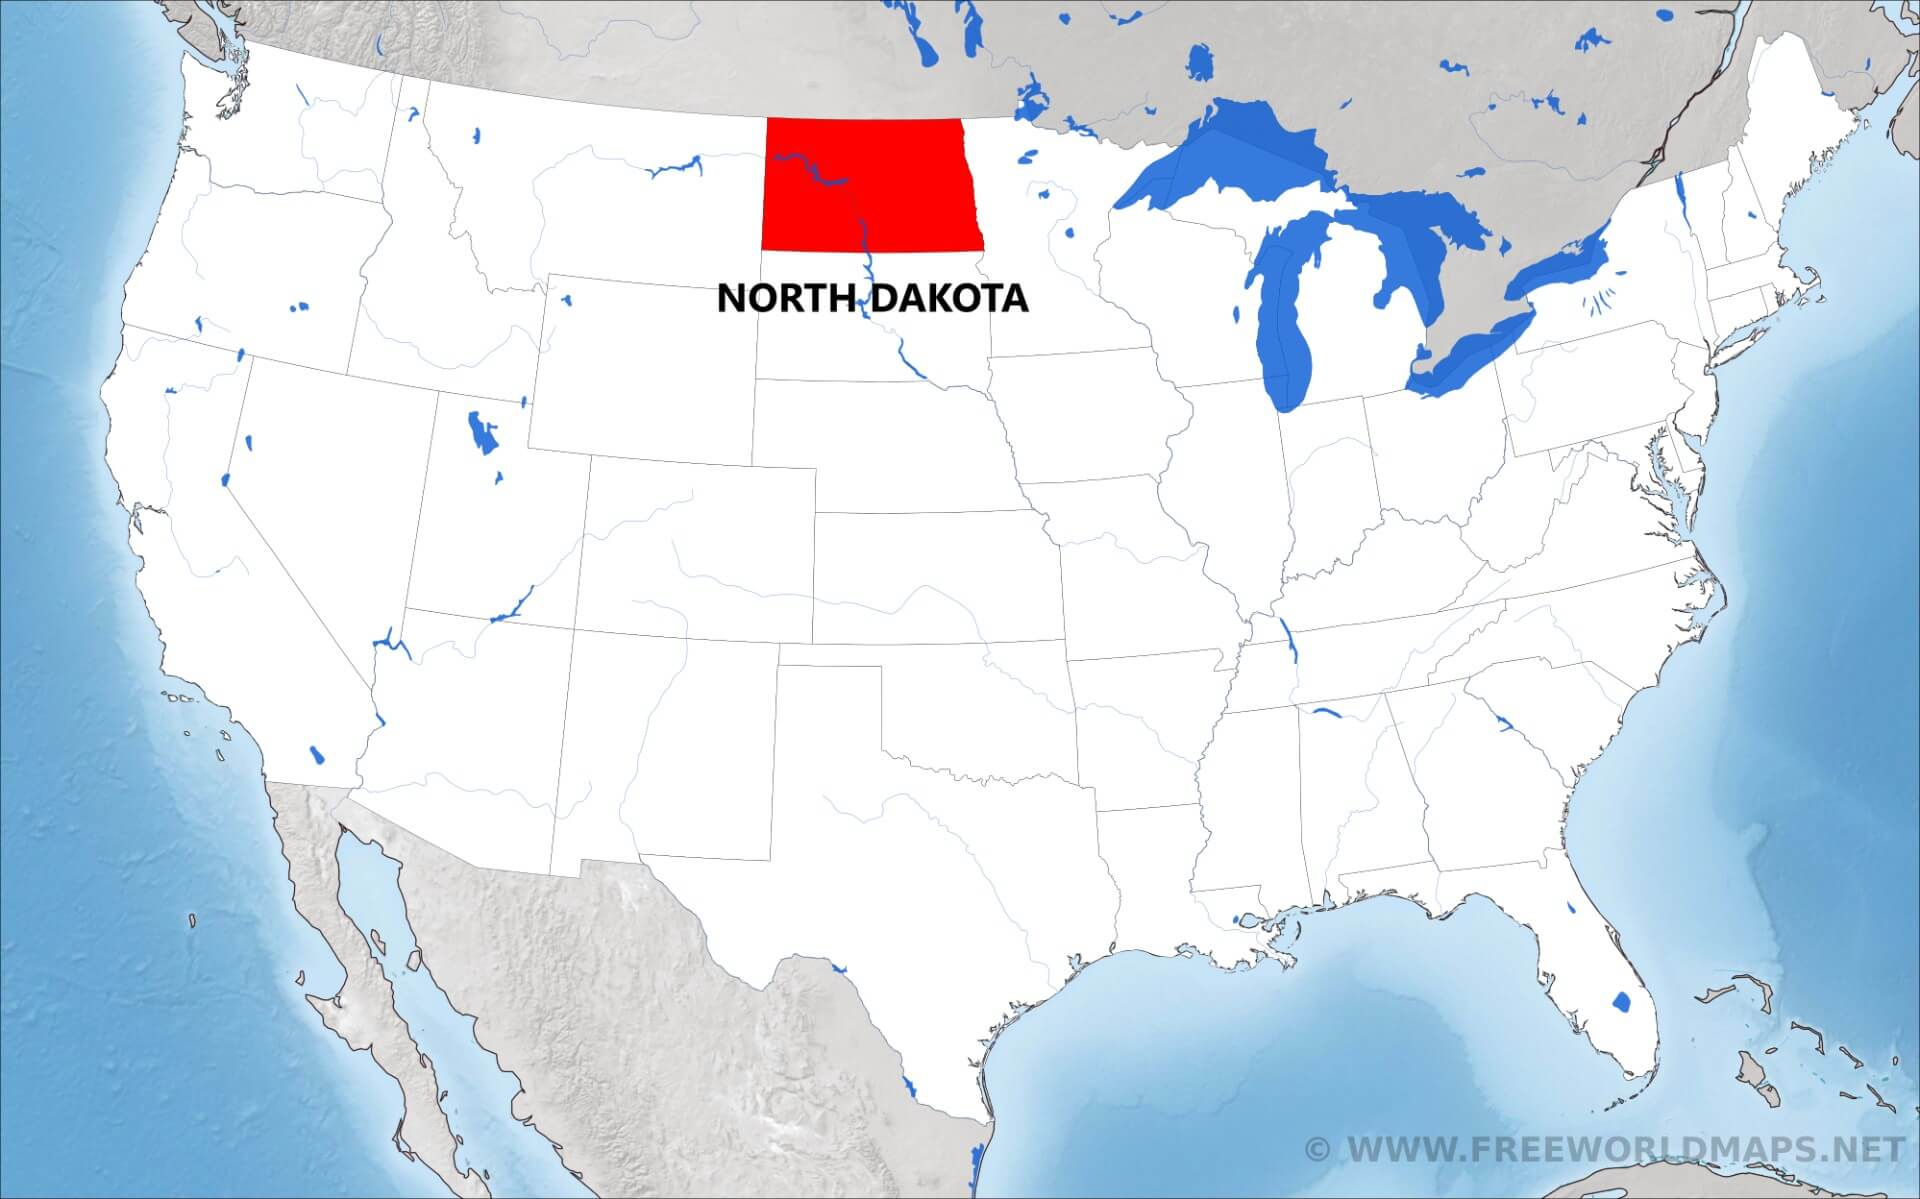 Where is North Dakota located on the map?